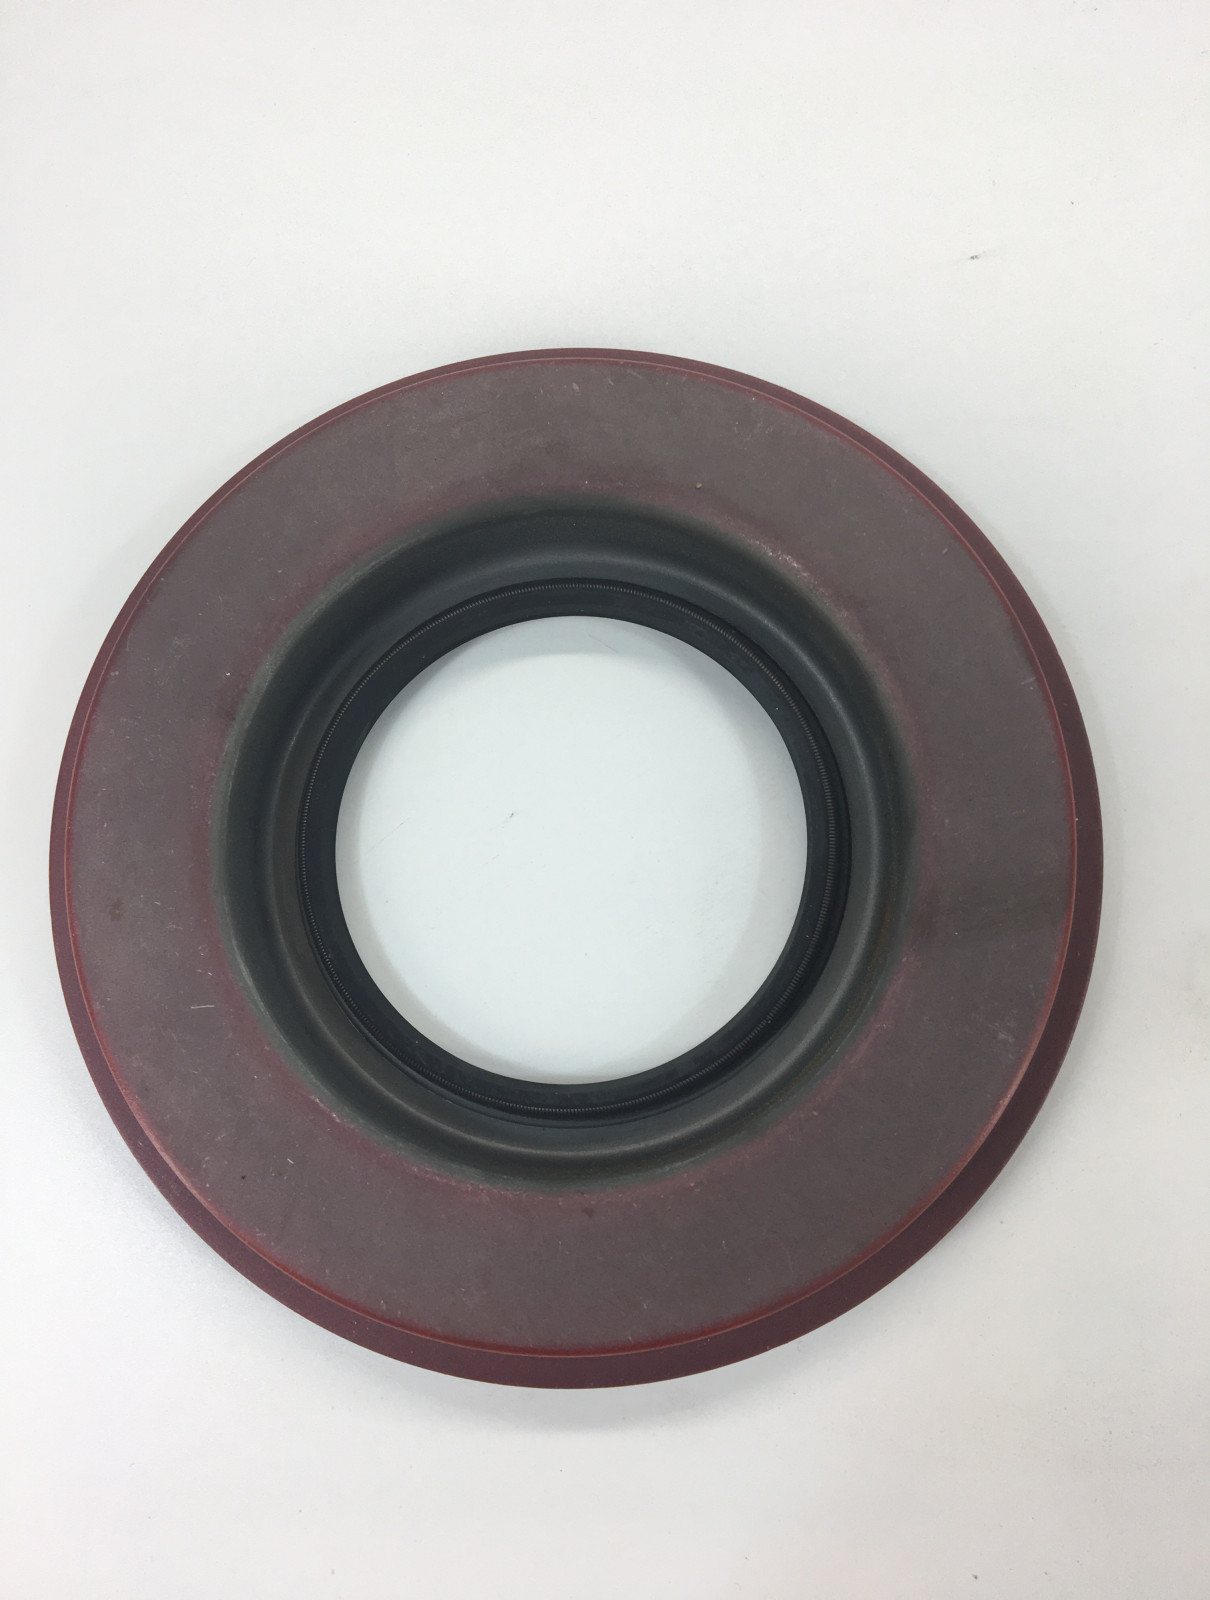 710008 Federal Mogul National Oil Seal